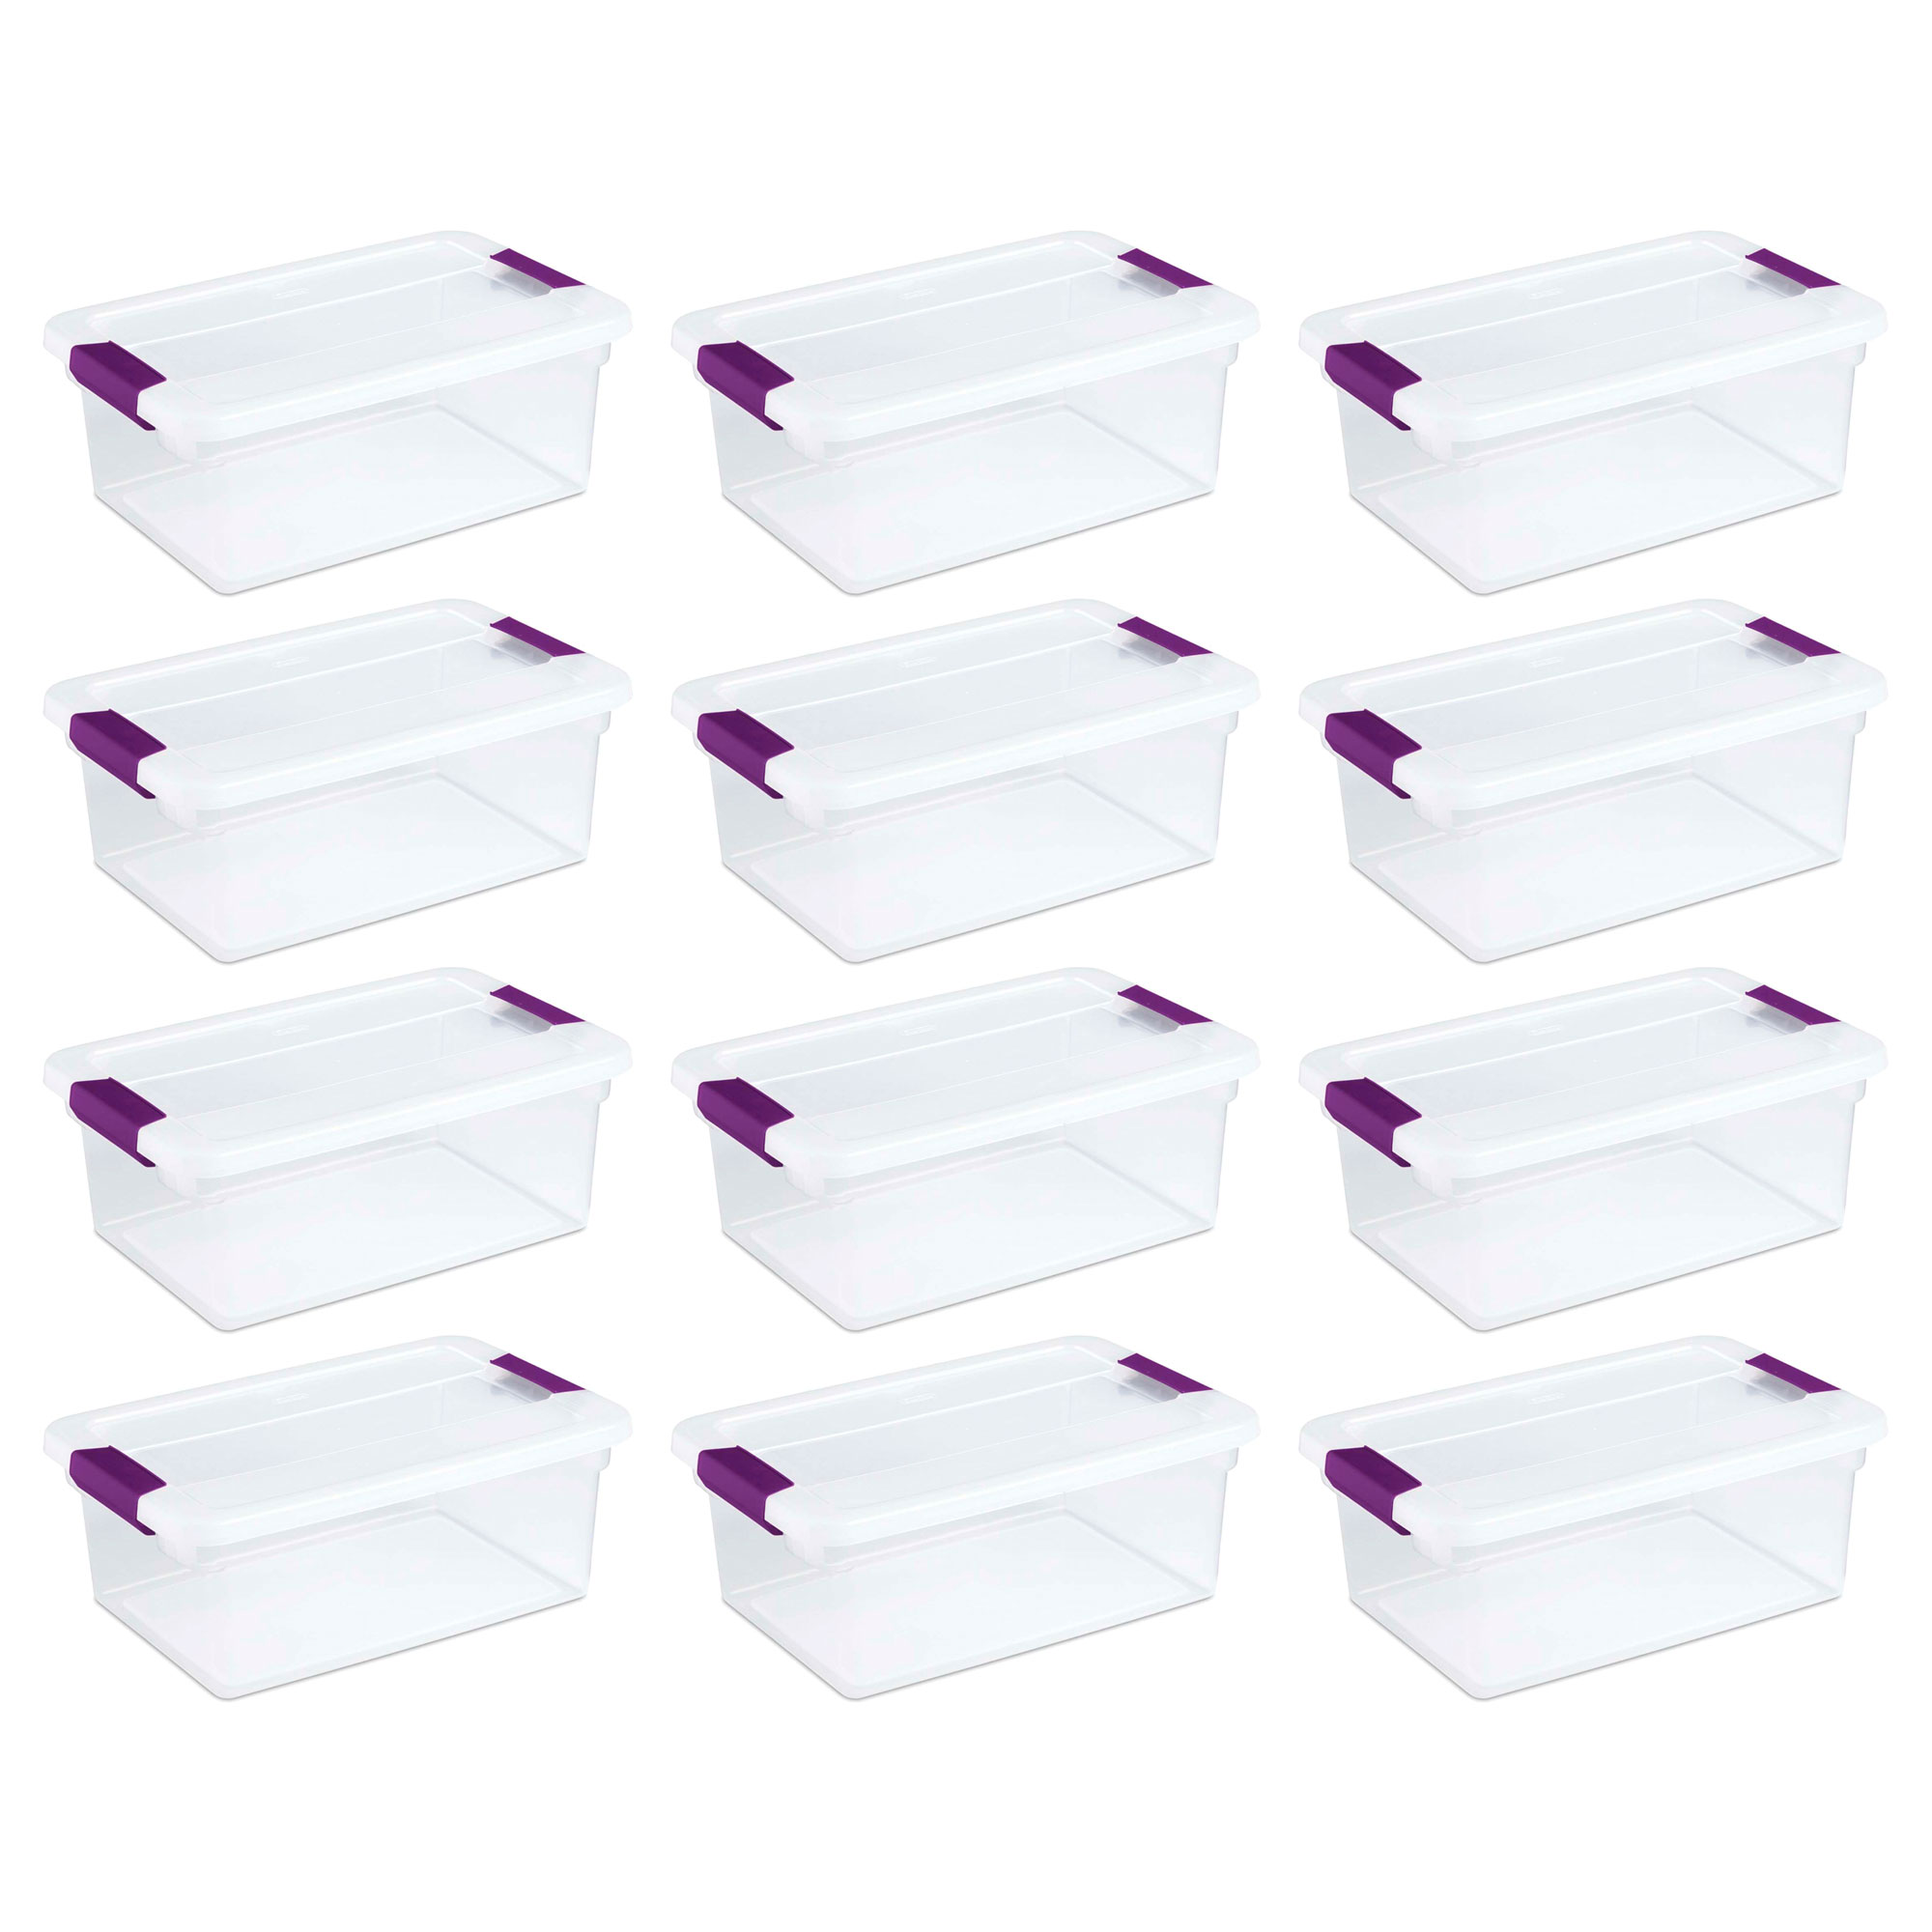 Sterilite 1753 15-Quart Clear View Latch Box Storage Tote Containers (12 Pack)